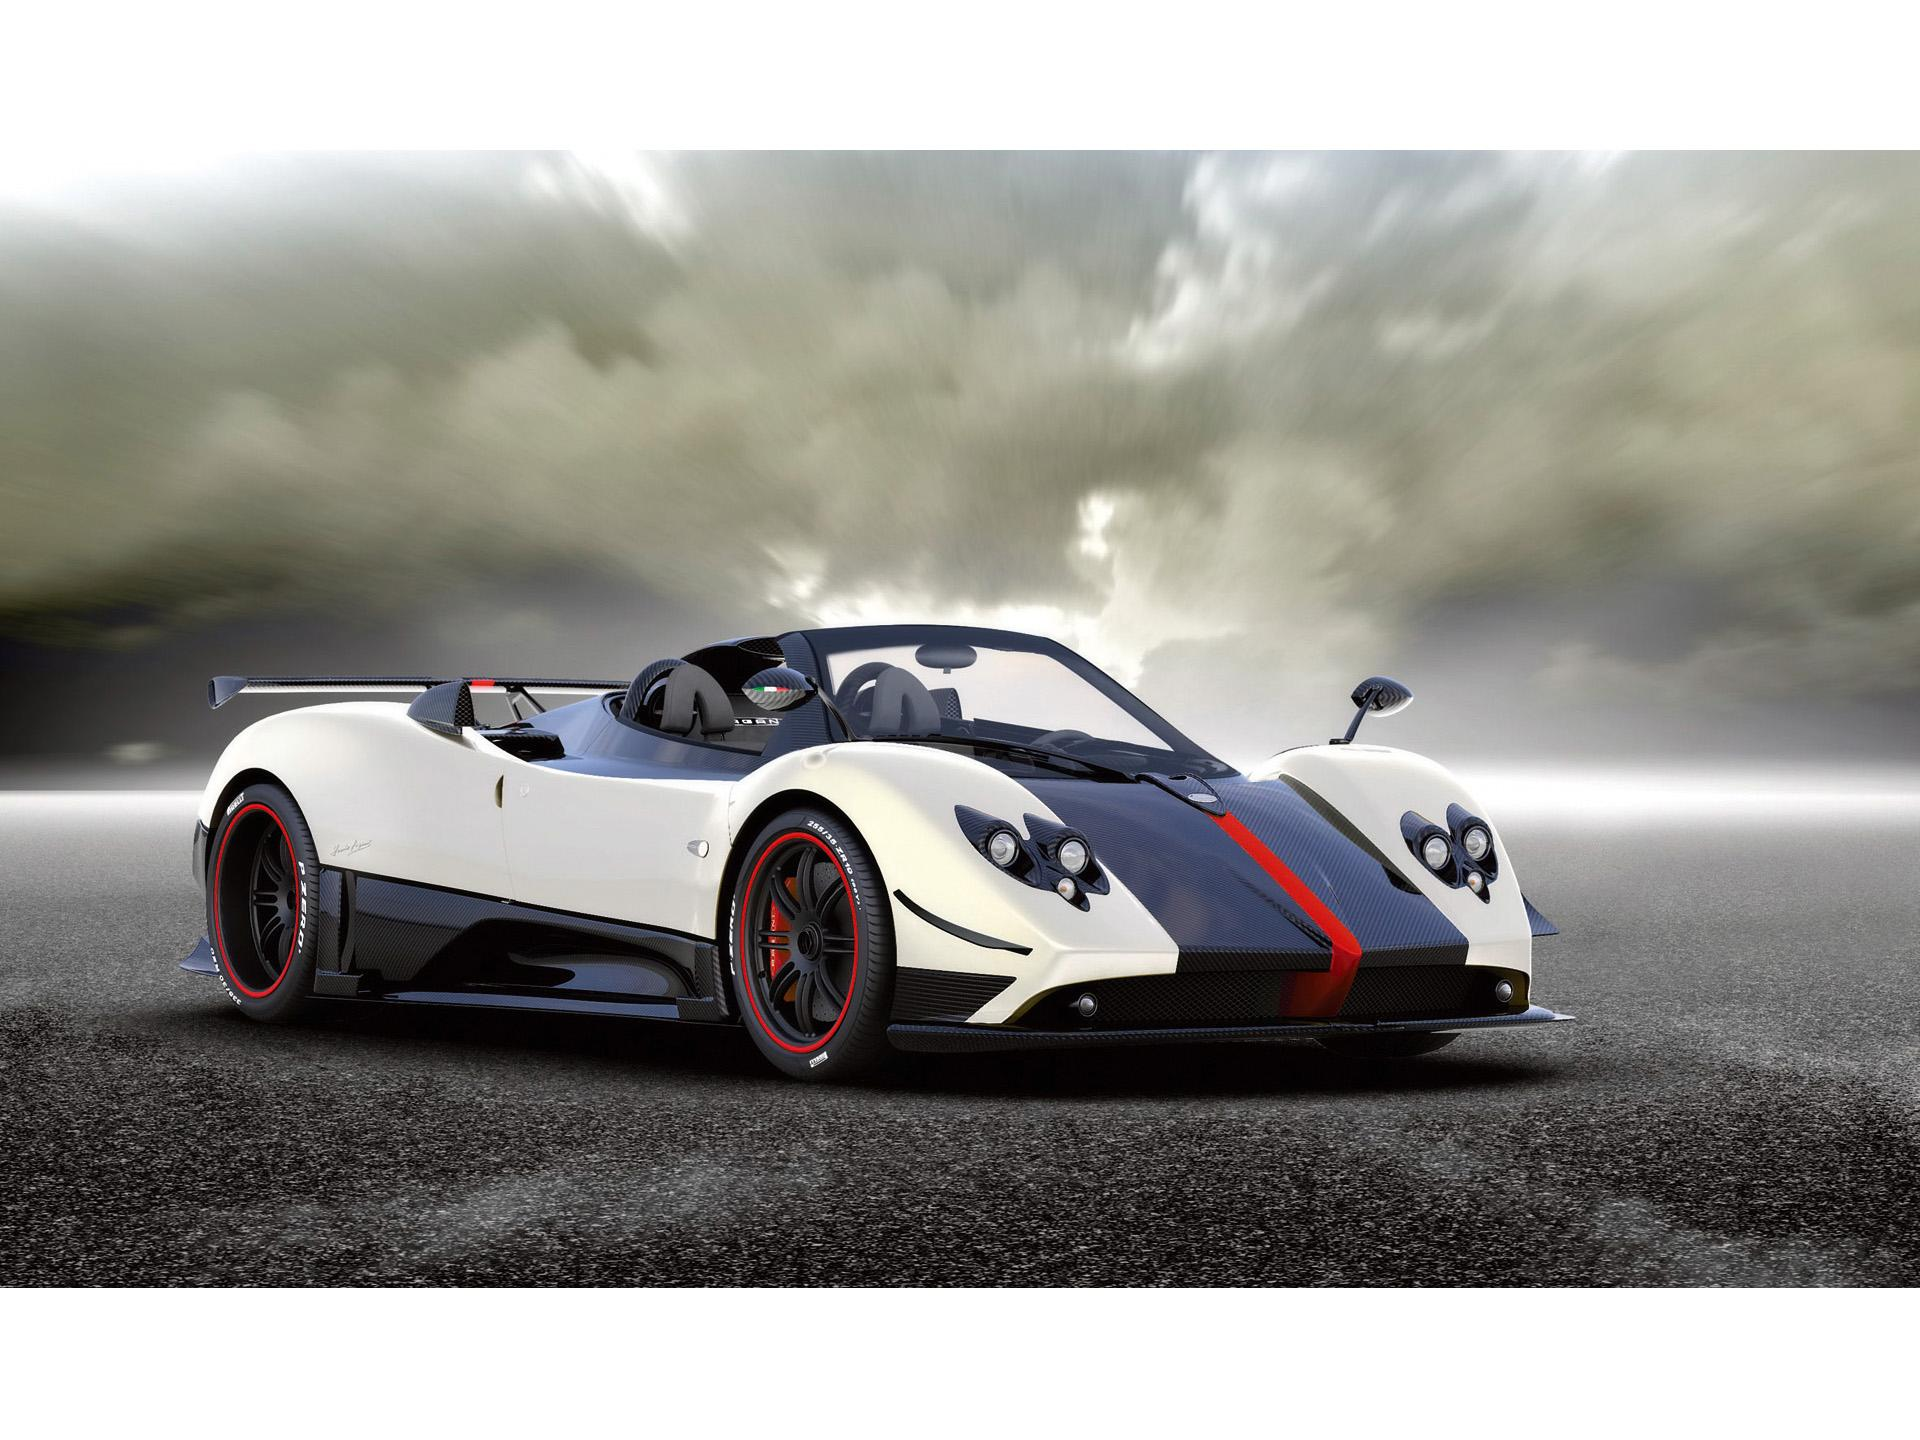 2009 Pagani Zonda Cinque Roadster News and Information